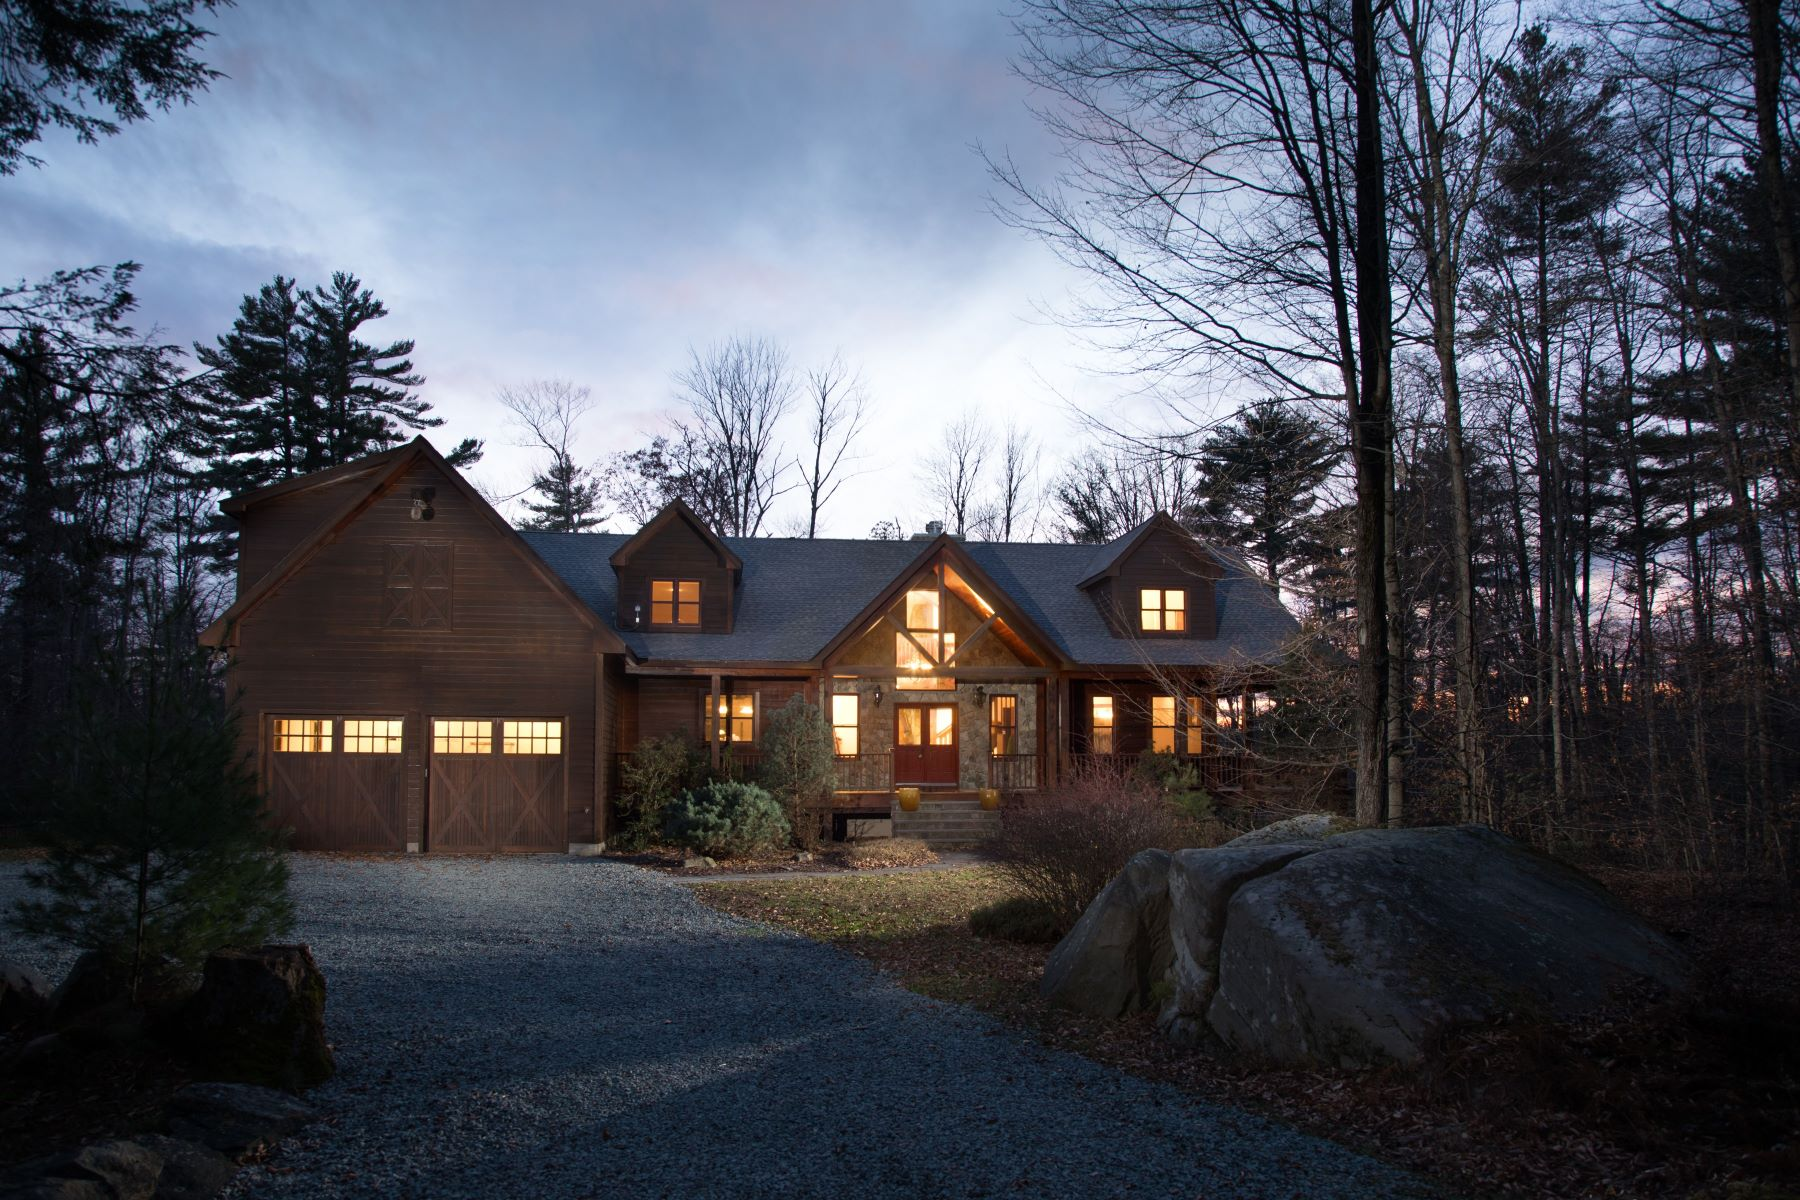 Single Family Homes for Active at Majestic Wooded Paradise at The Chapin Estate 252 Woodstone Trl Bethel, New York 12720 United States